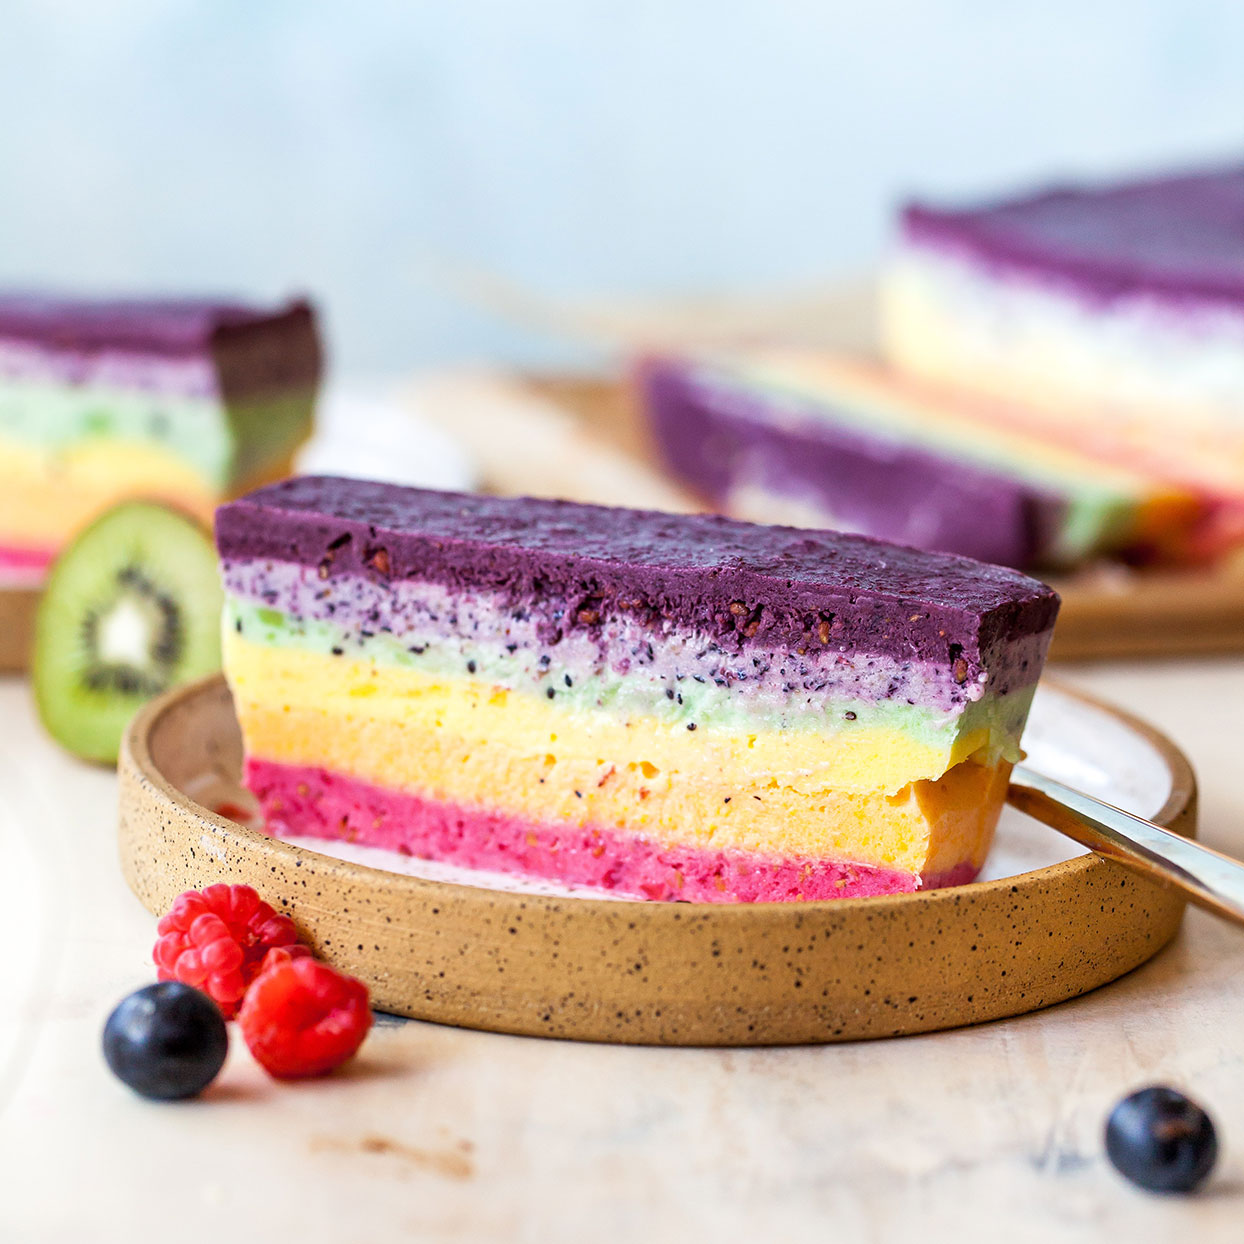 Rainbow Ice Cream Cake Allrecipes Trusted Brands